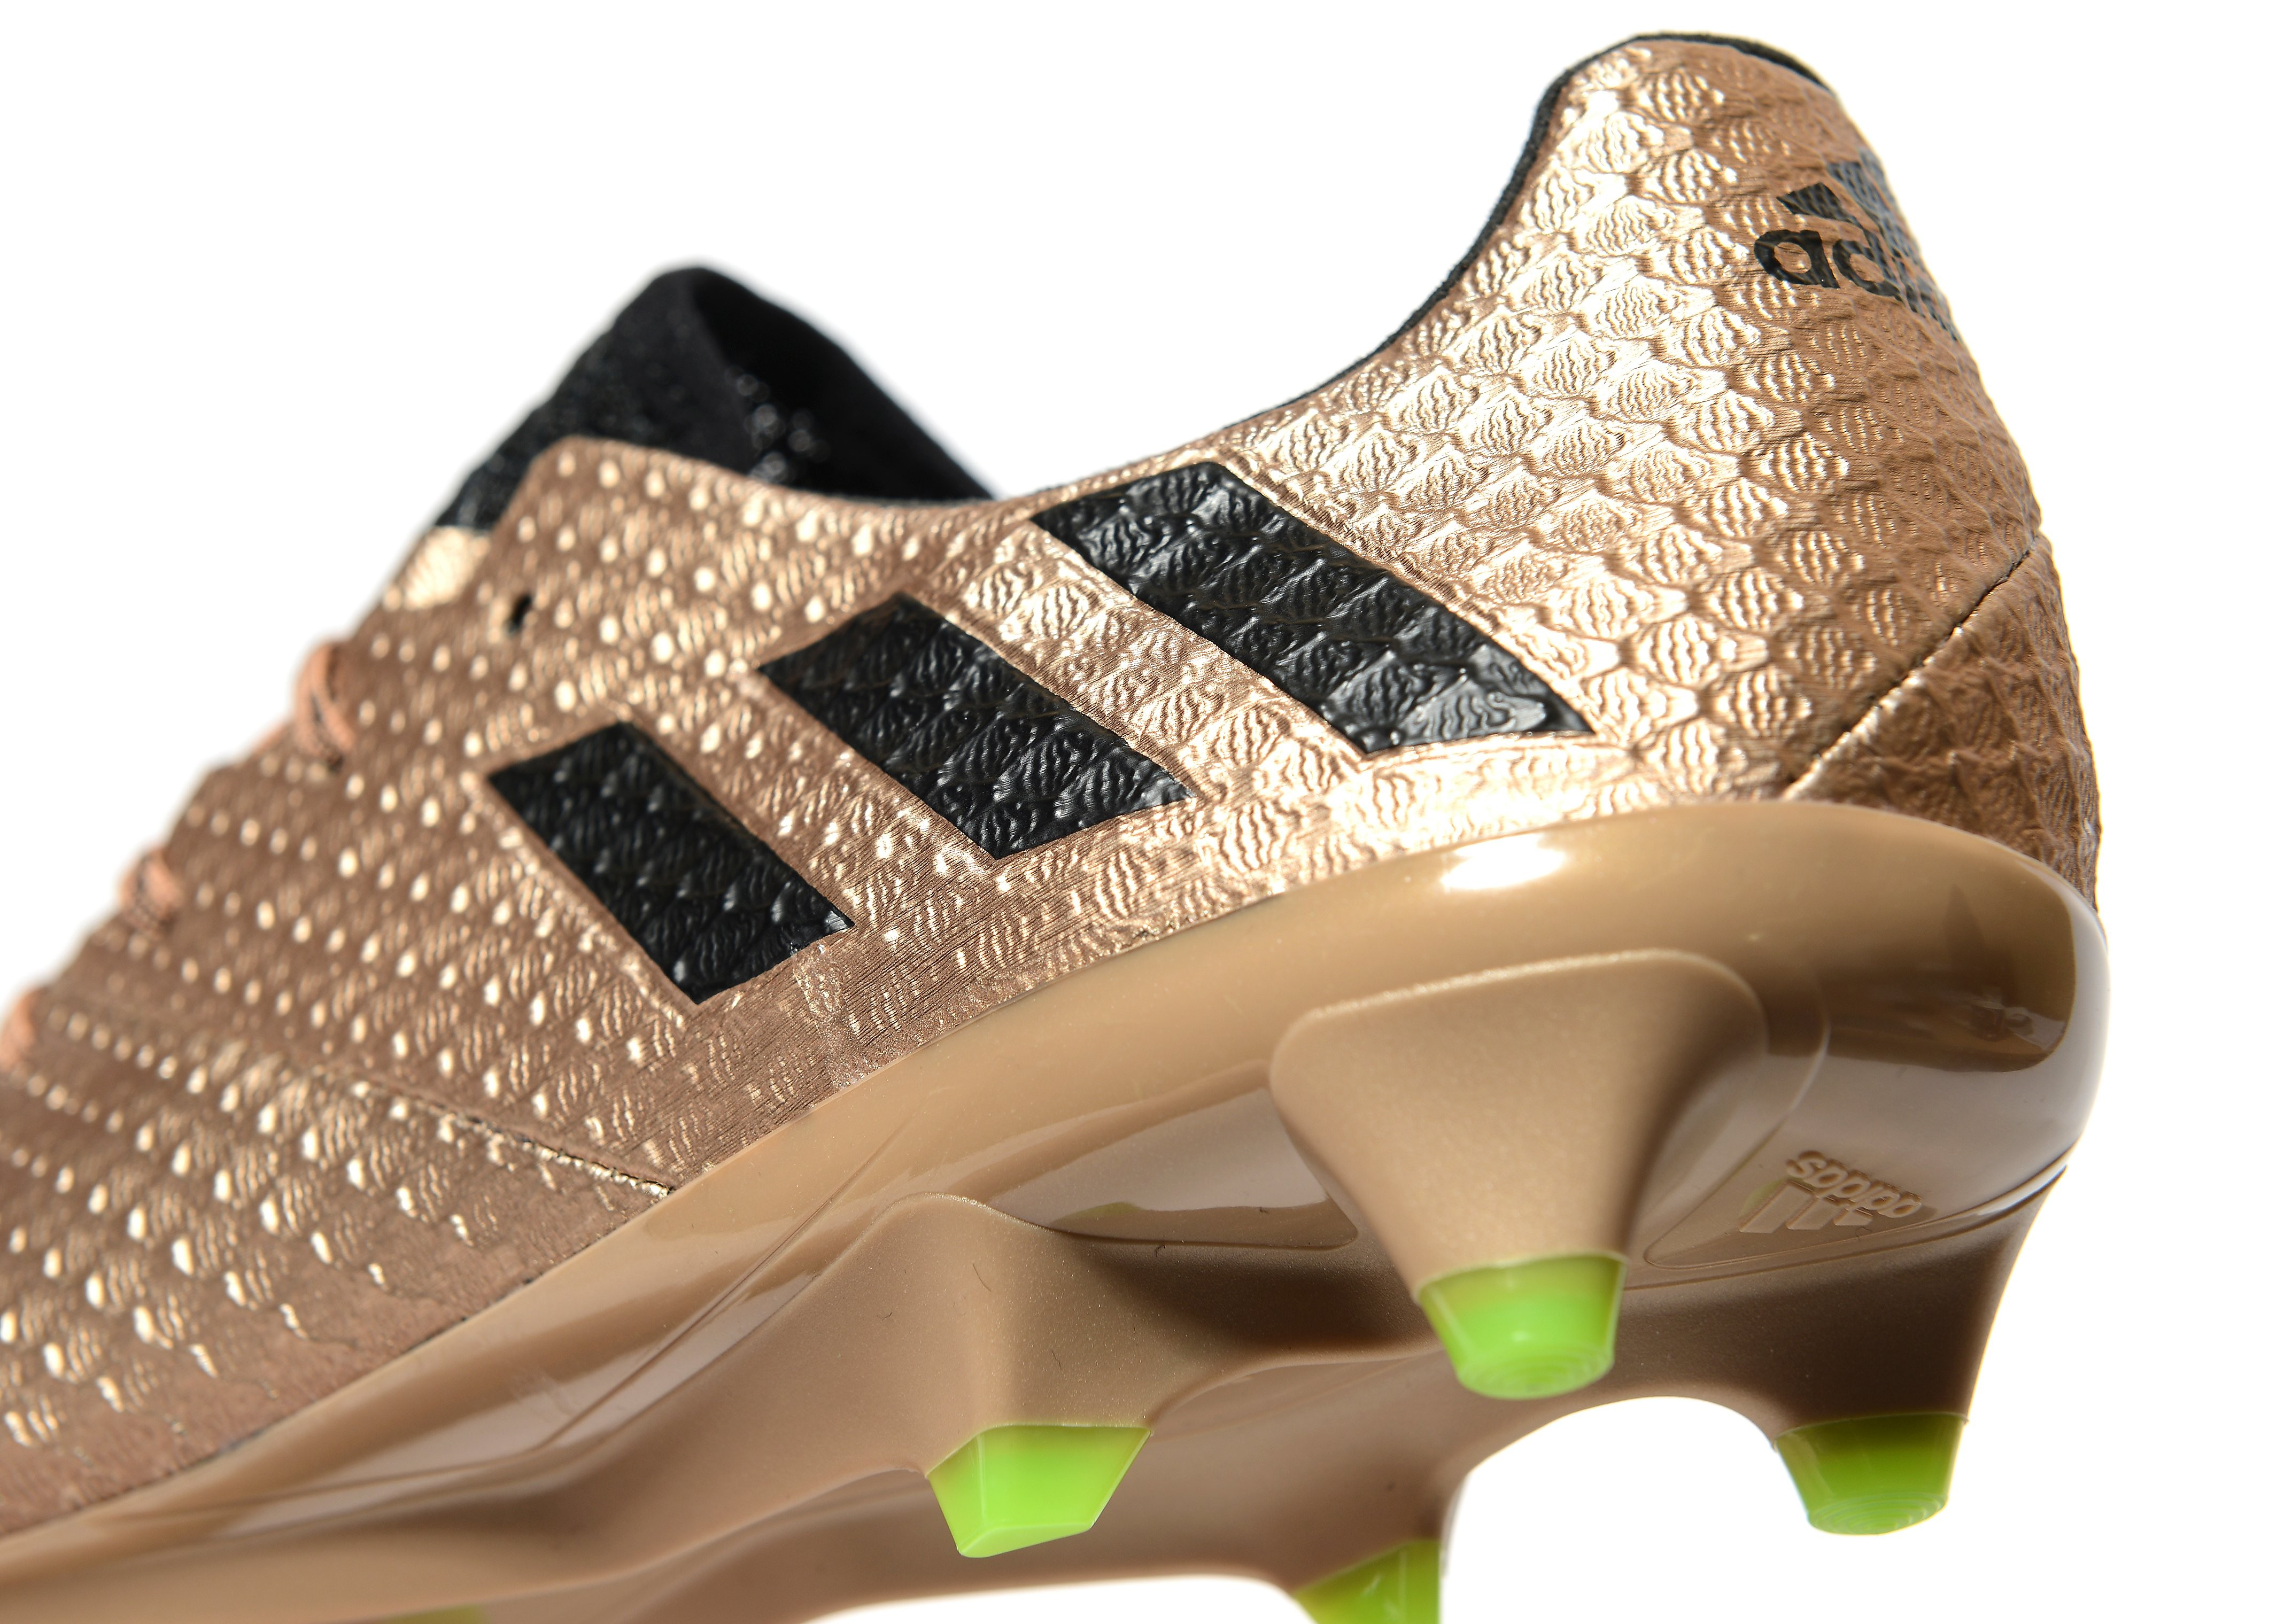 adidas Messi 16.1 FG Homme